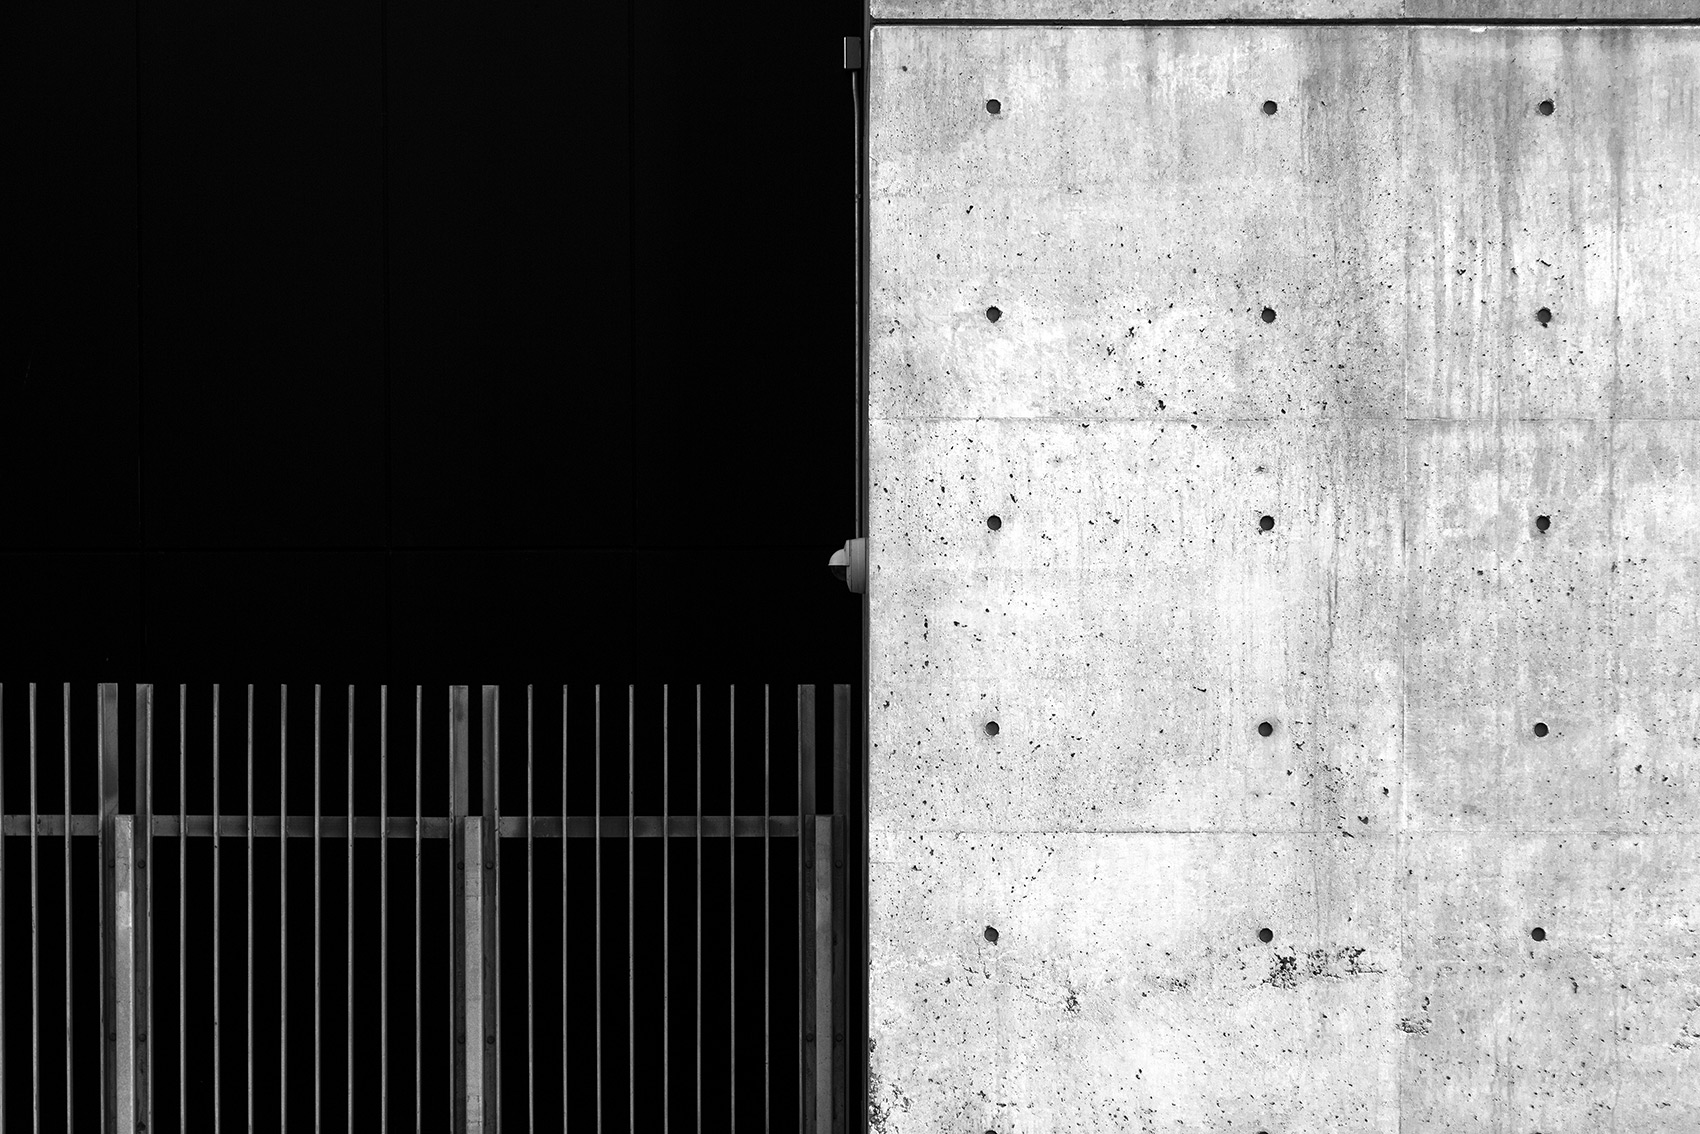 20141015 Concrete Wall Meets Metal Fence And Void